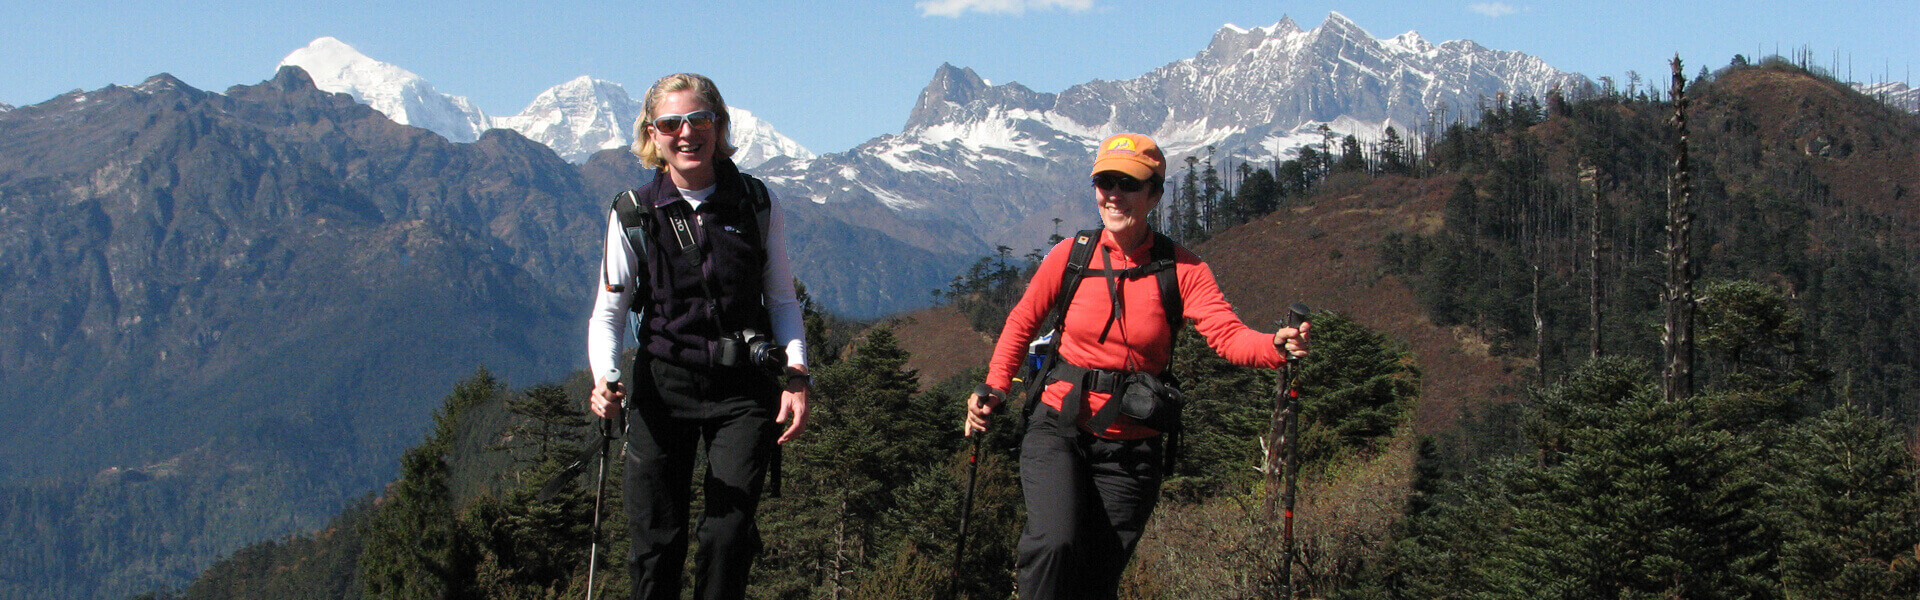 Nichols Expeditions Hiking Tours